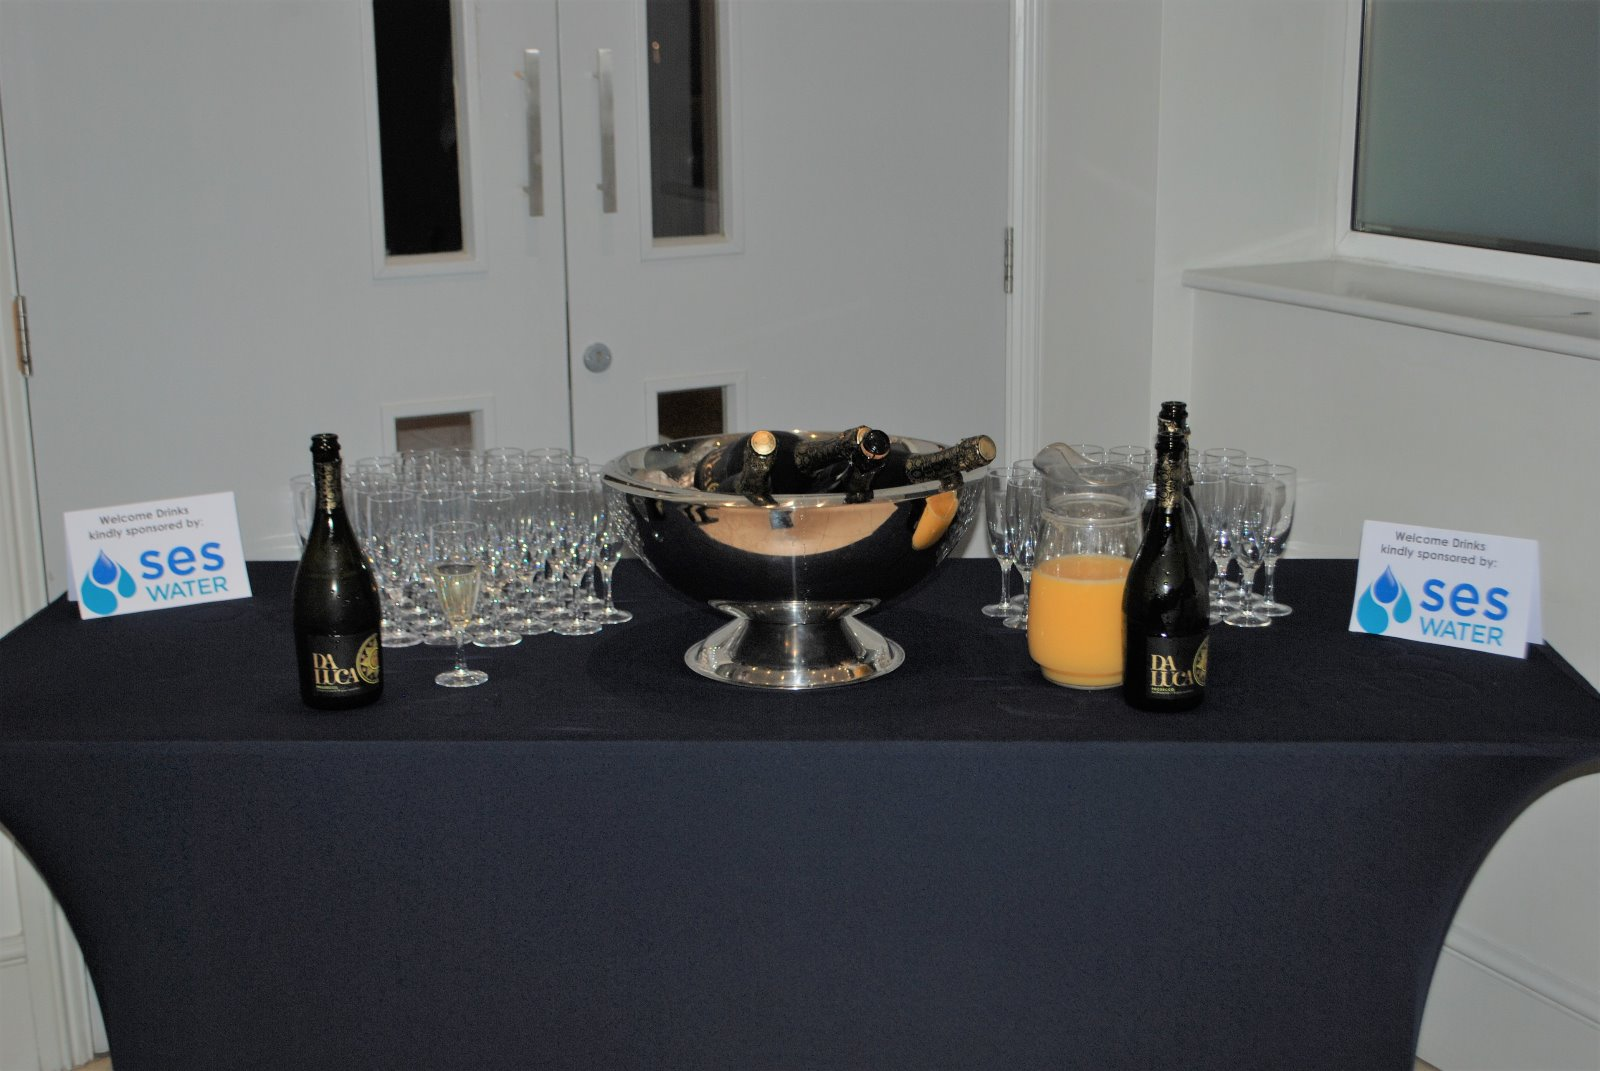 Ball Photo 4 – Welcome Drinks